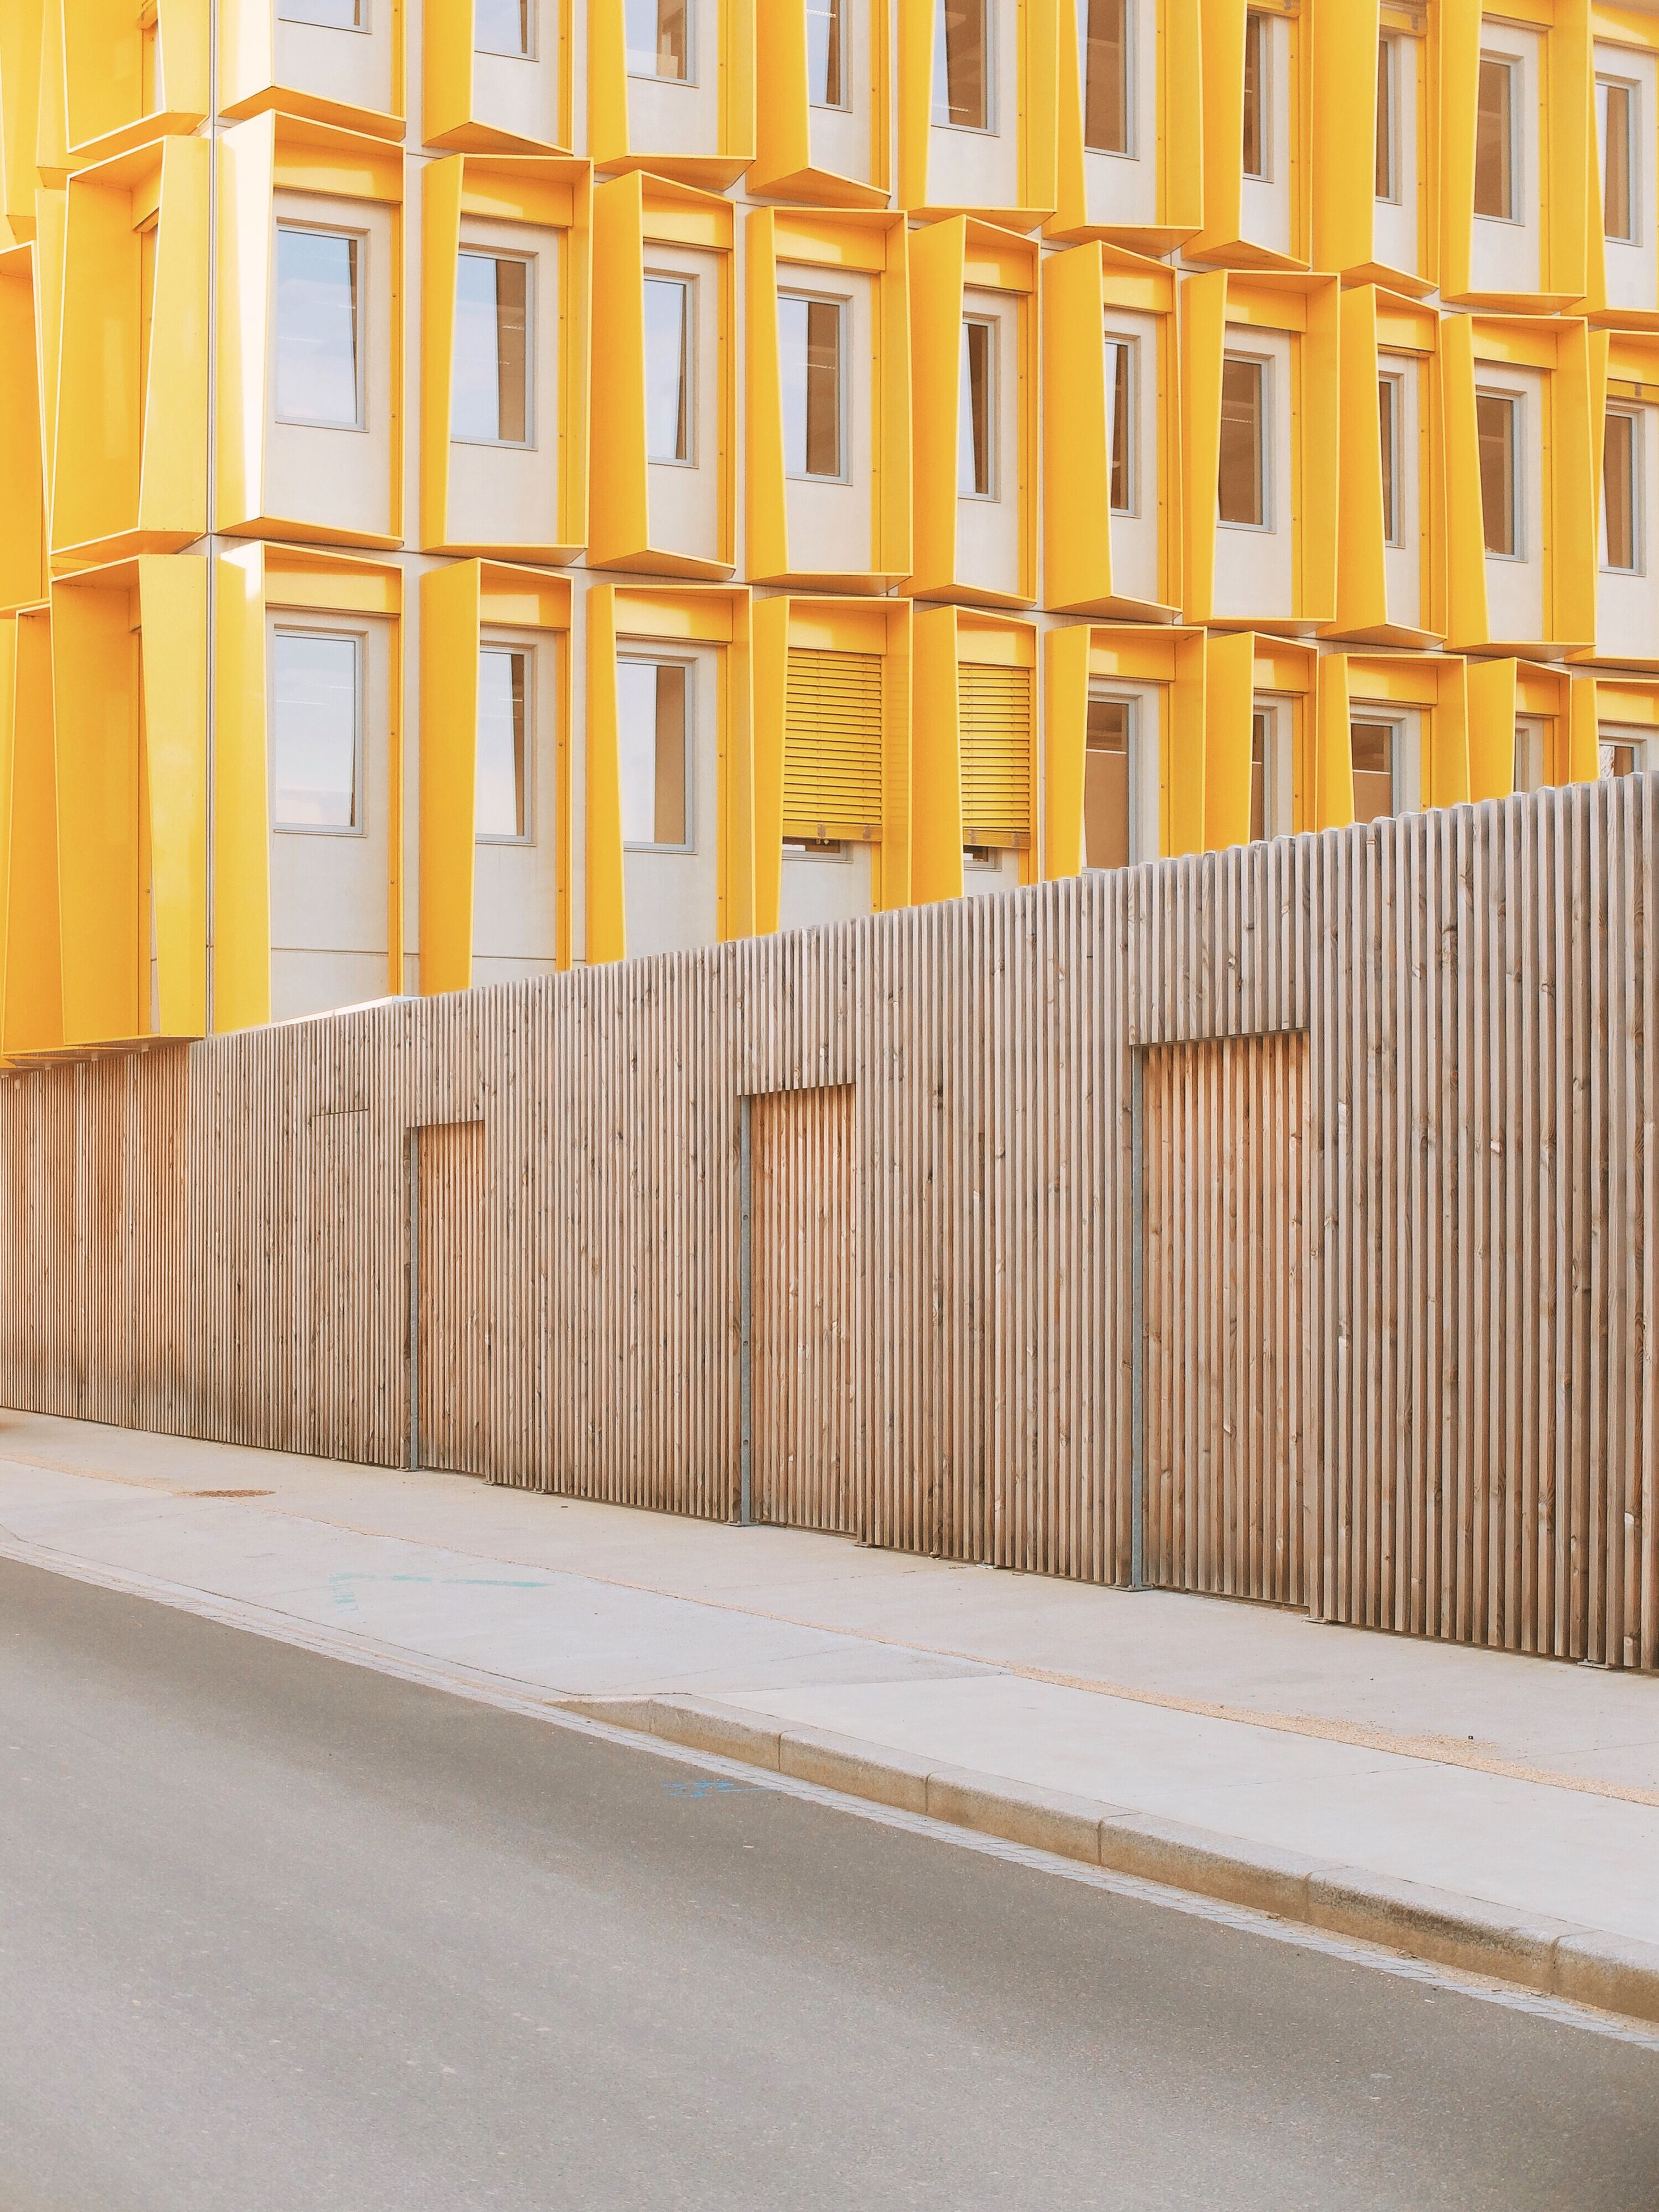 built structure, architecture, building exterior, yellow, no people, outdoors, day